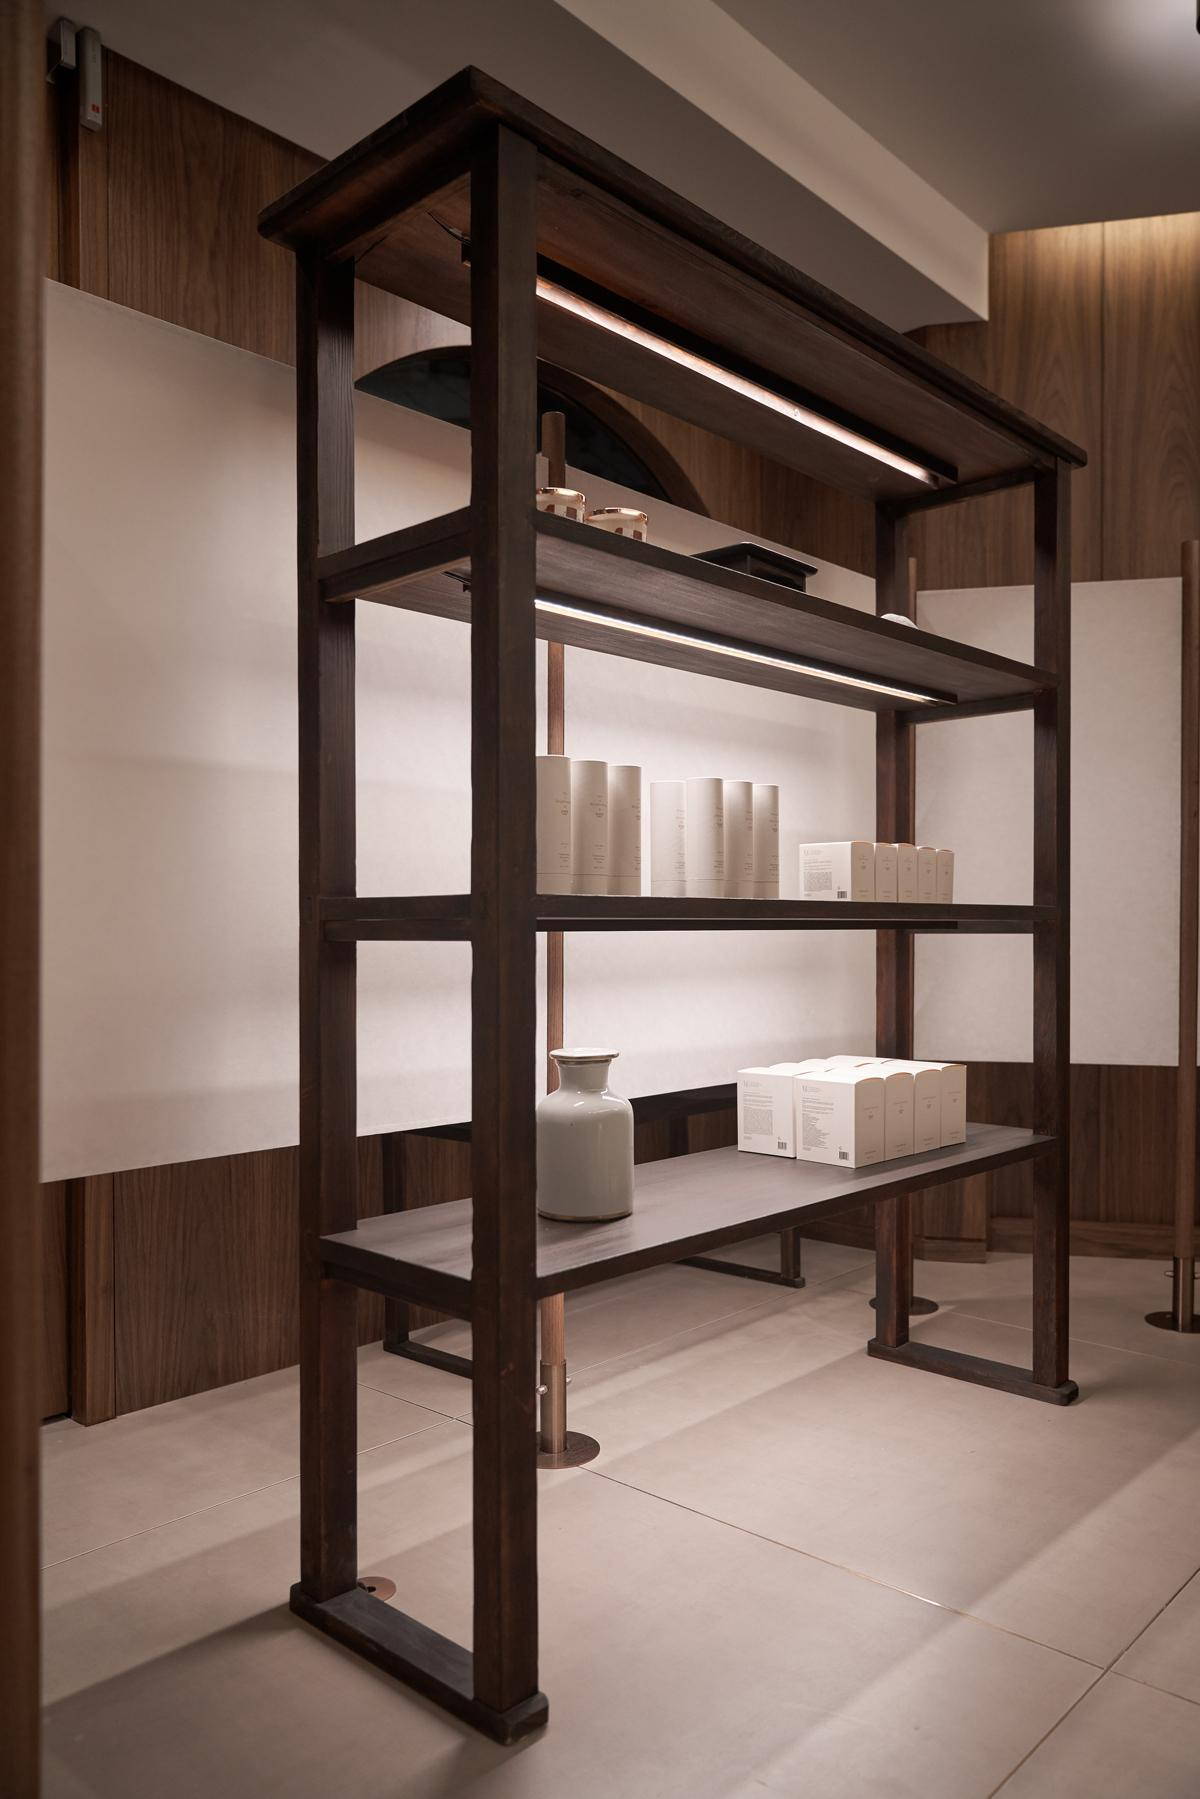 Shelving in the Eath Library cosmetics boutique in Seoul, South Korea